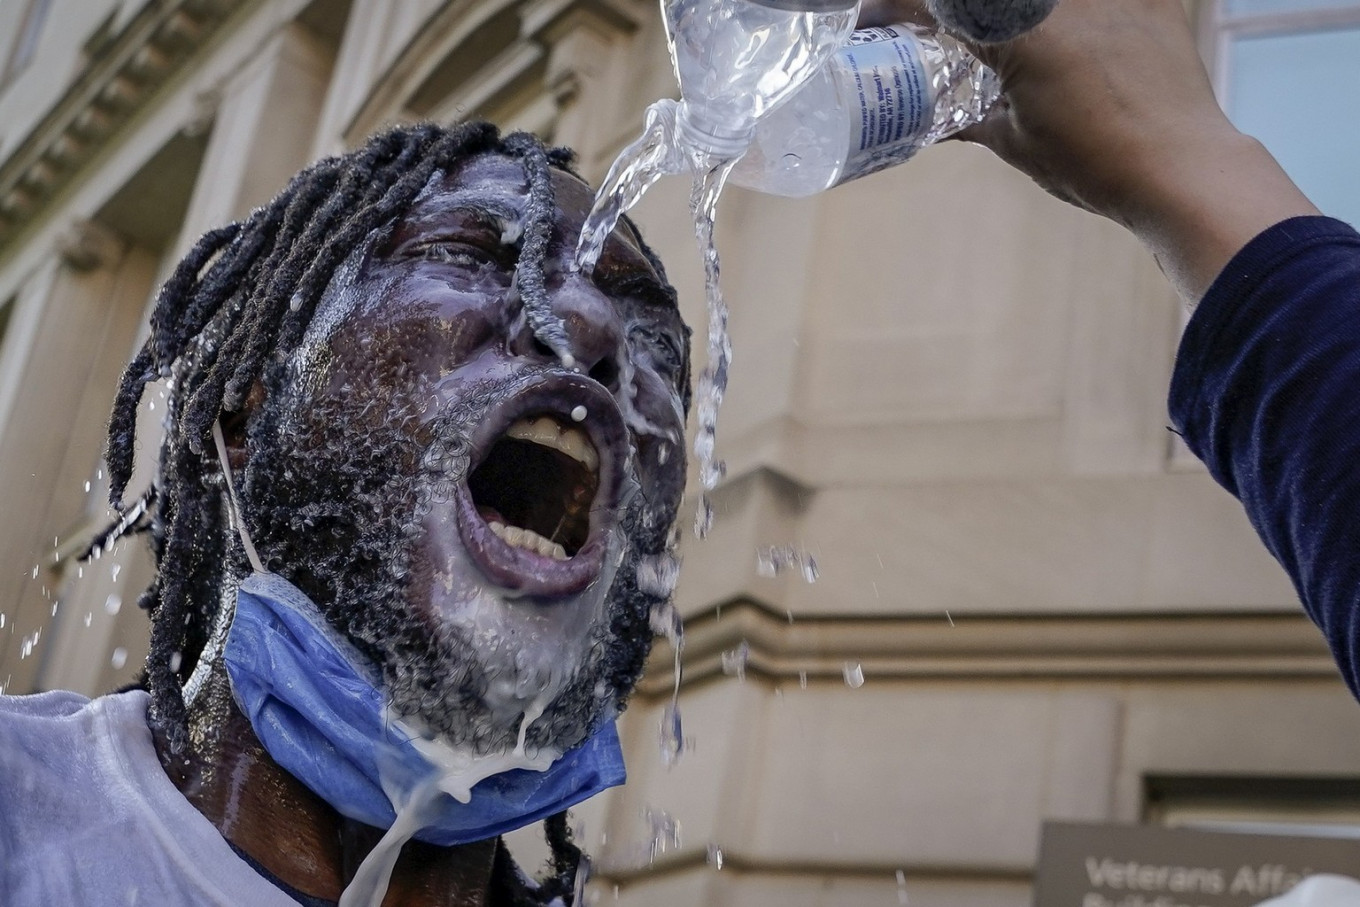 A demonstrator is doused with water and milk after being hit with pepper spray from law enforcement during a protest on June 1, 2020 in downtown Washington, DC. Protests and riots continue in cities across America following the death of George Floyd, who died after being restrained by Minneapolis police officer Derek Chauvin. Chauvin, 44, was charged last Friday with third-degree murder and second-degree manslaughter. AFP/Getty Images/Drew Angerer